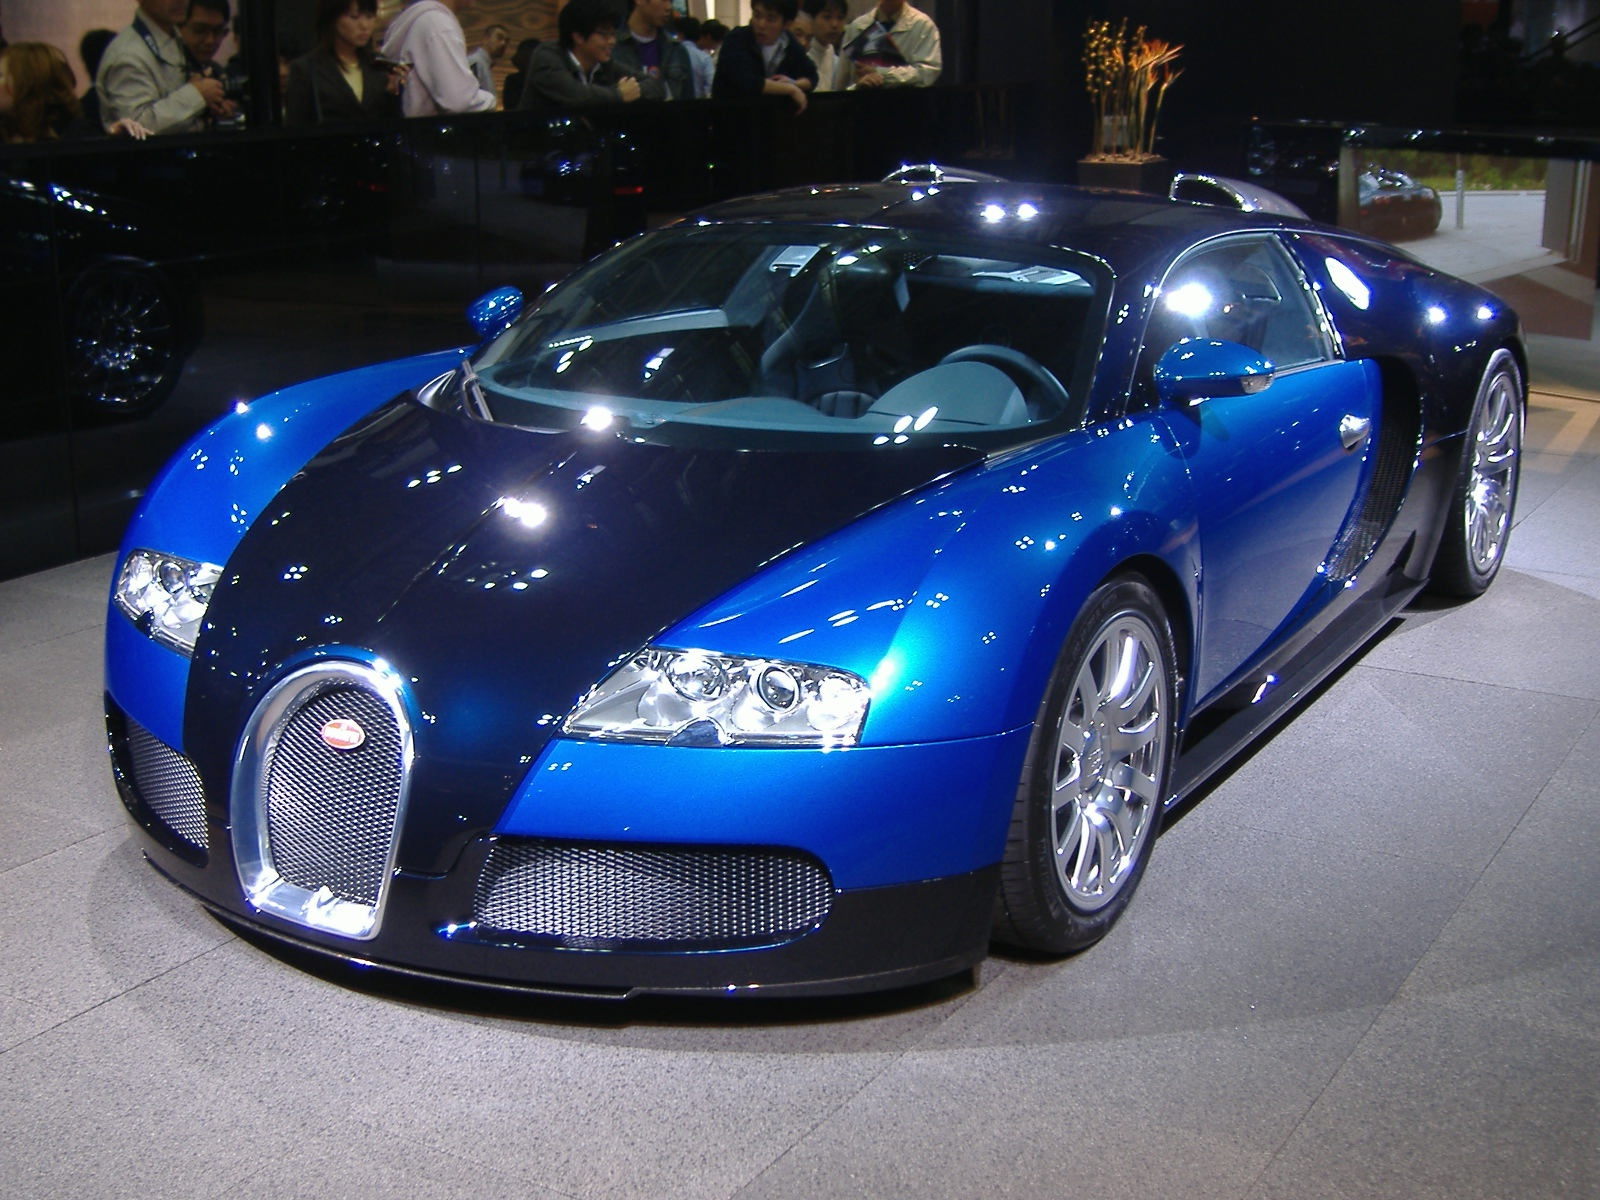 Bugatti Veyron history, photos on Better Parts LTD